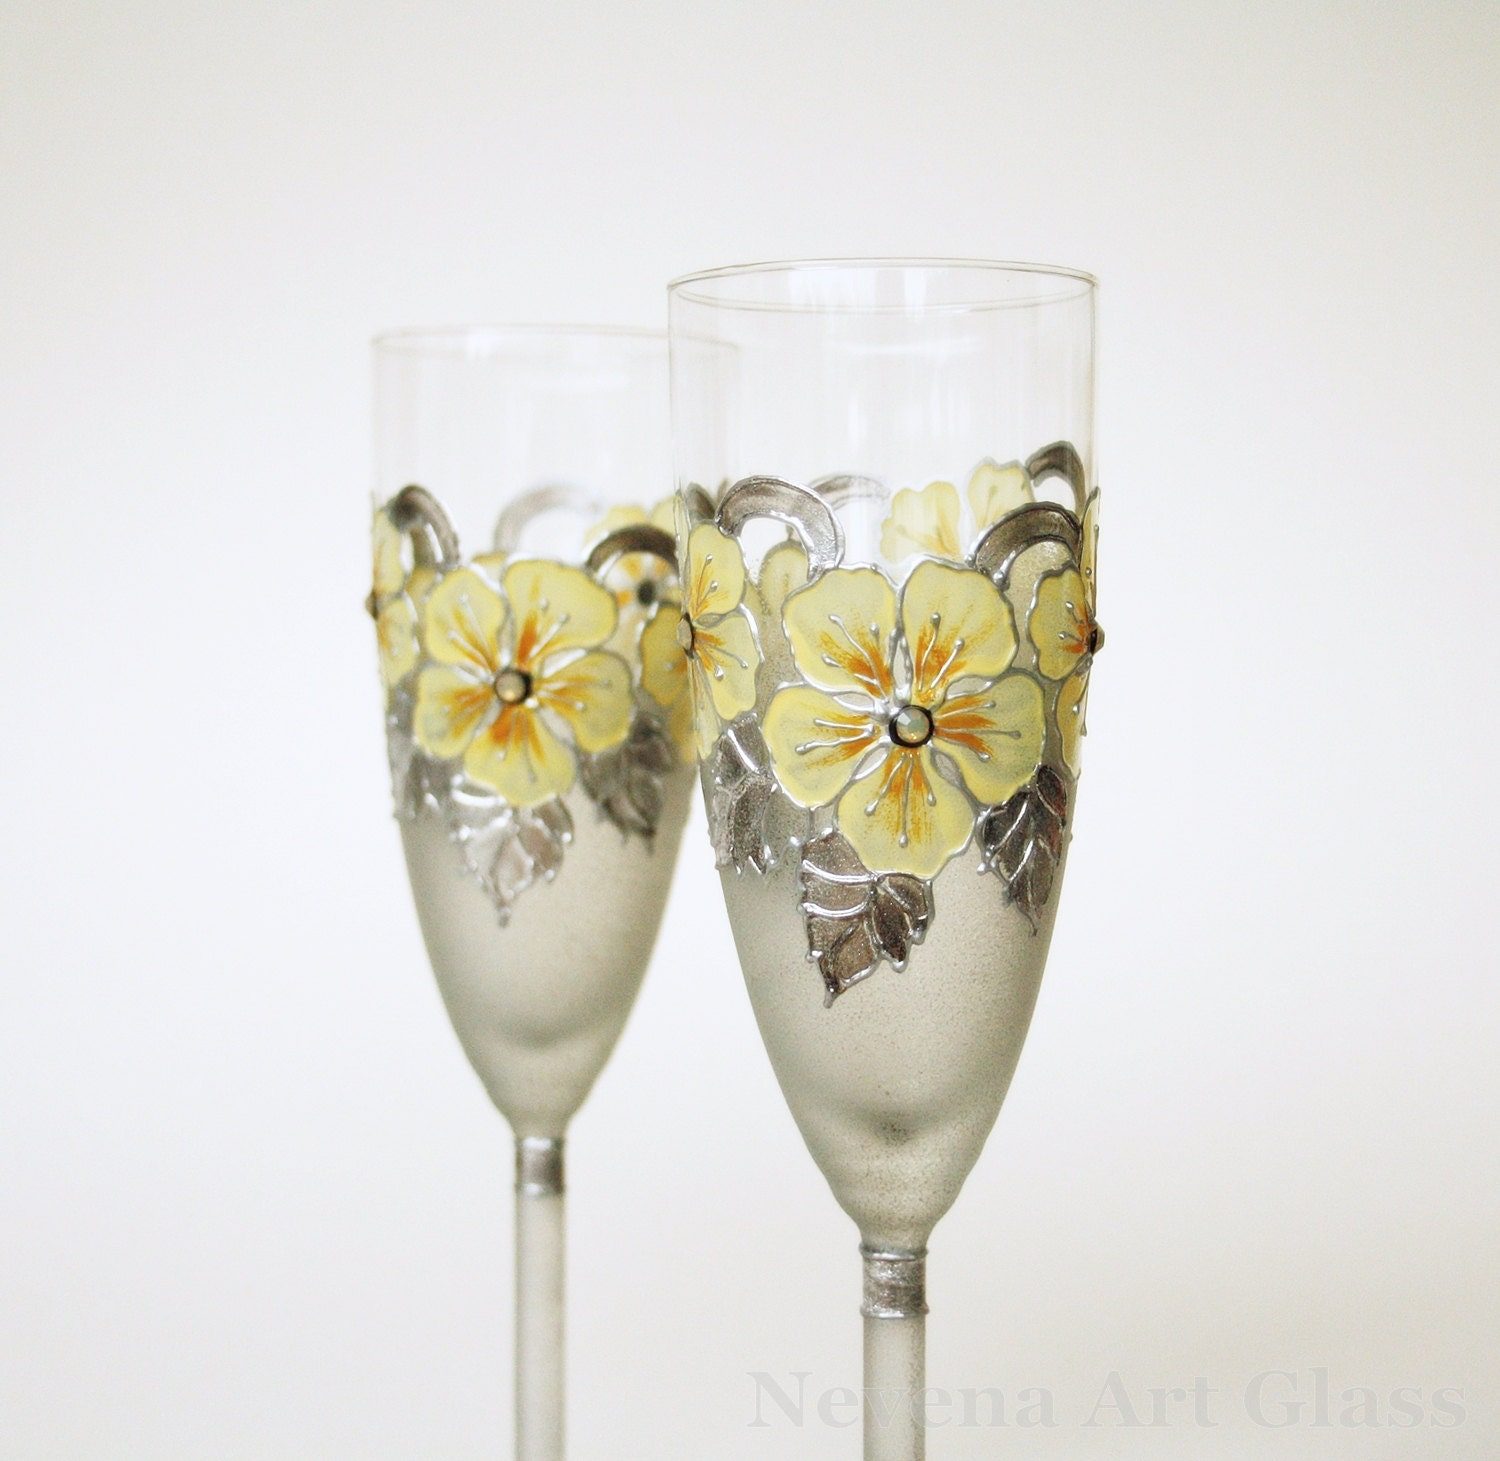 Champagne Flute Wedding Glasses Wedding Flute HAND PAINTED